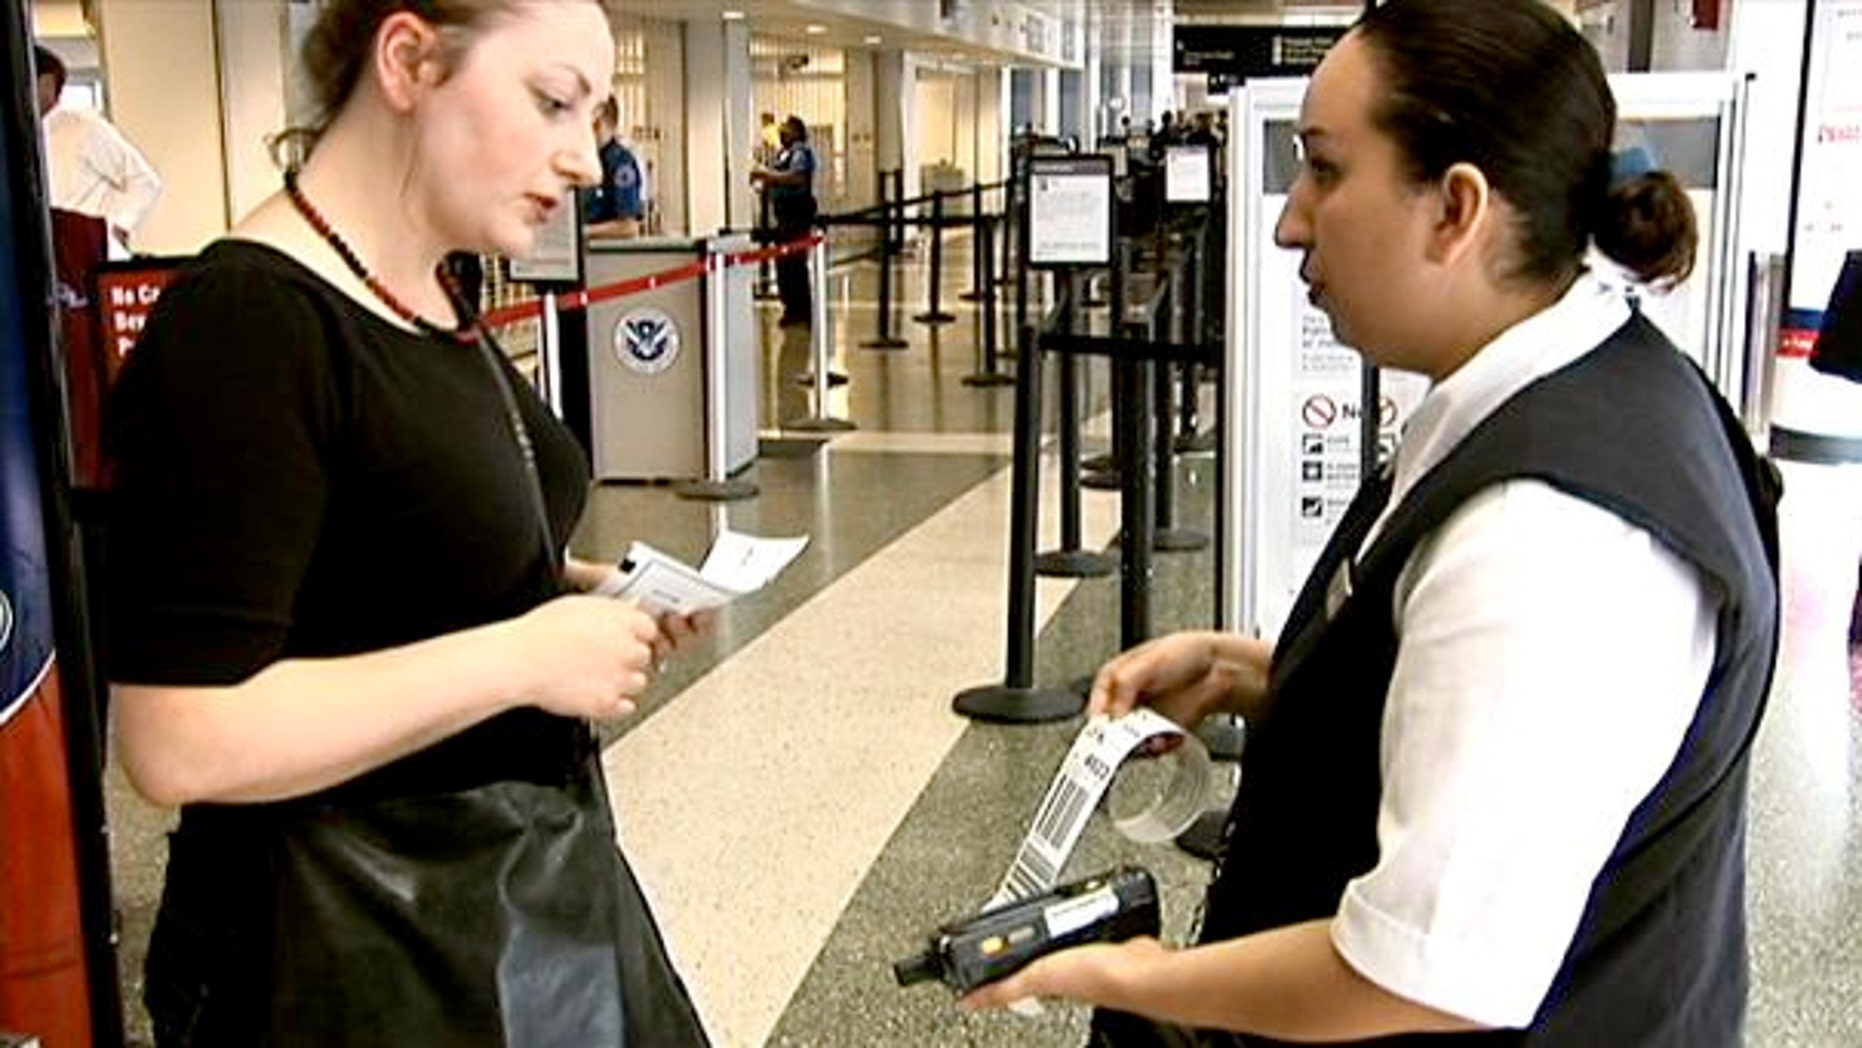 Remember the day when there was a person whose main job was to check baggage tags?